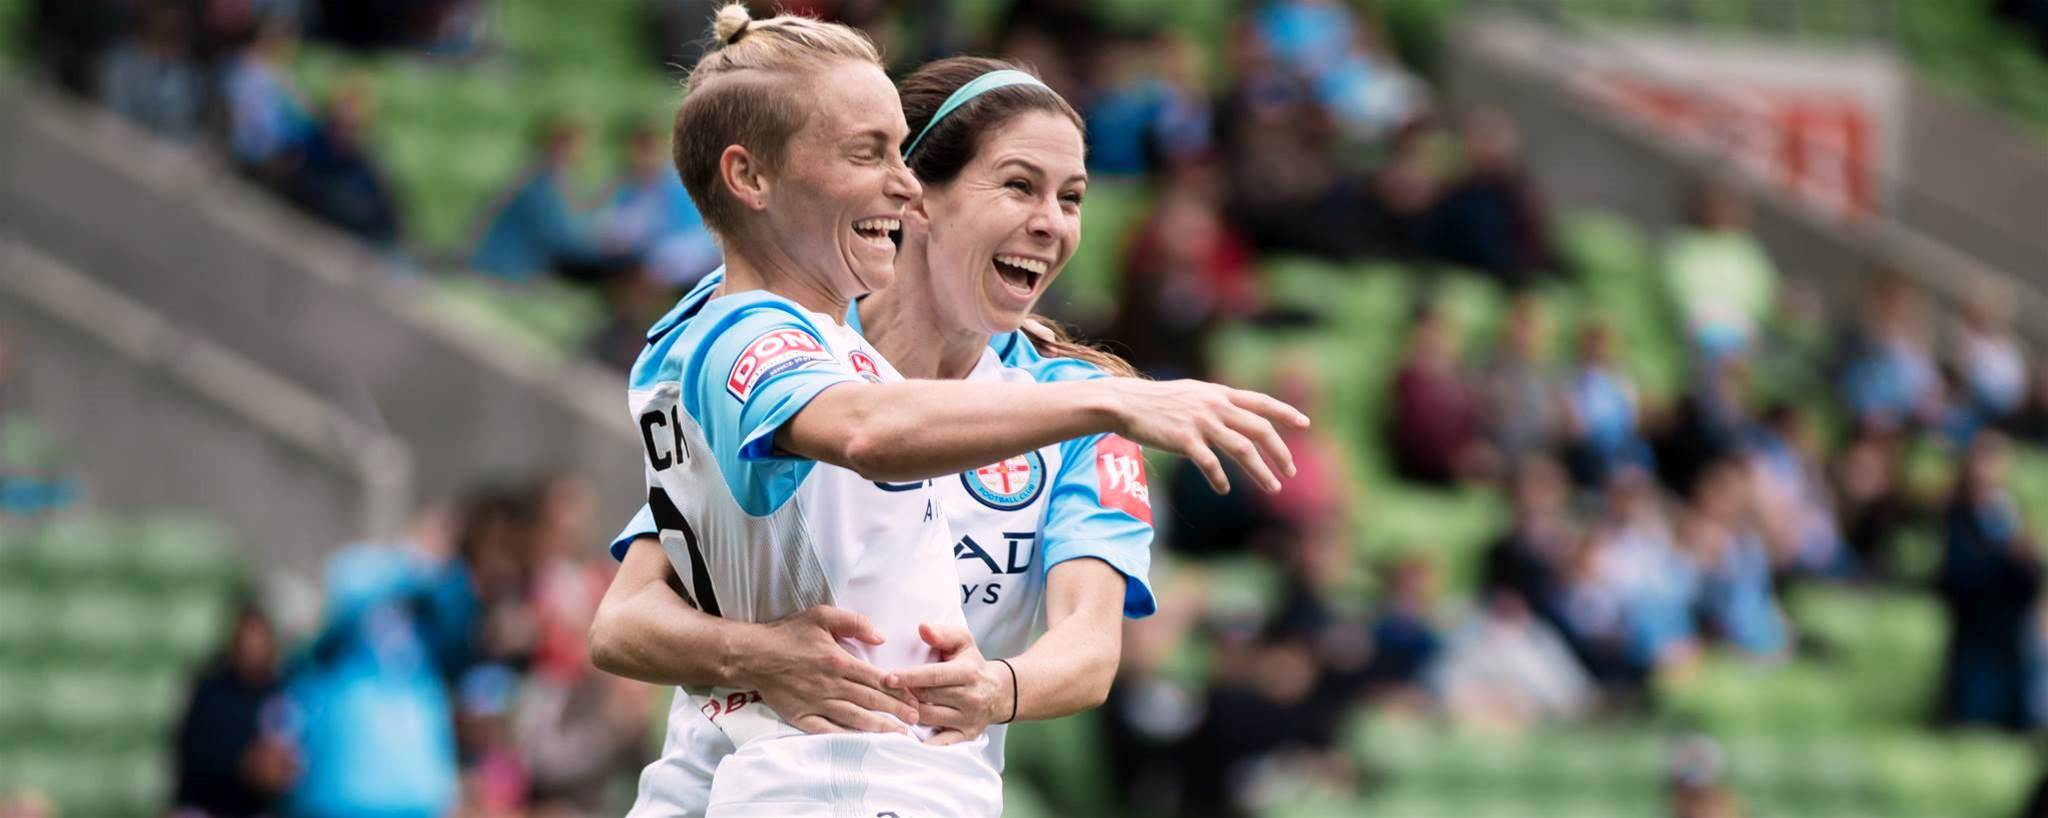 Melbourne City class shines through in Melbourne Derby